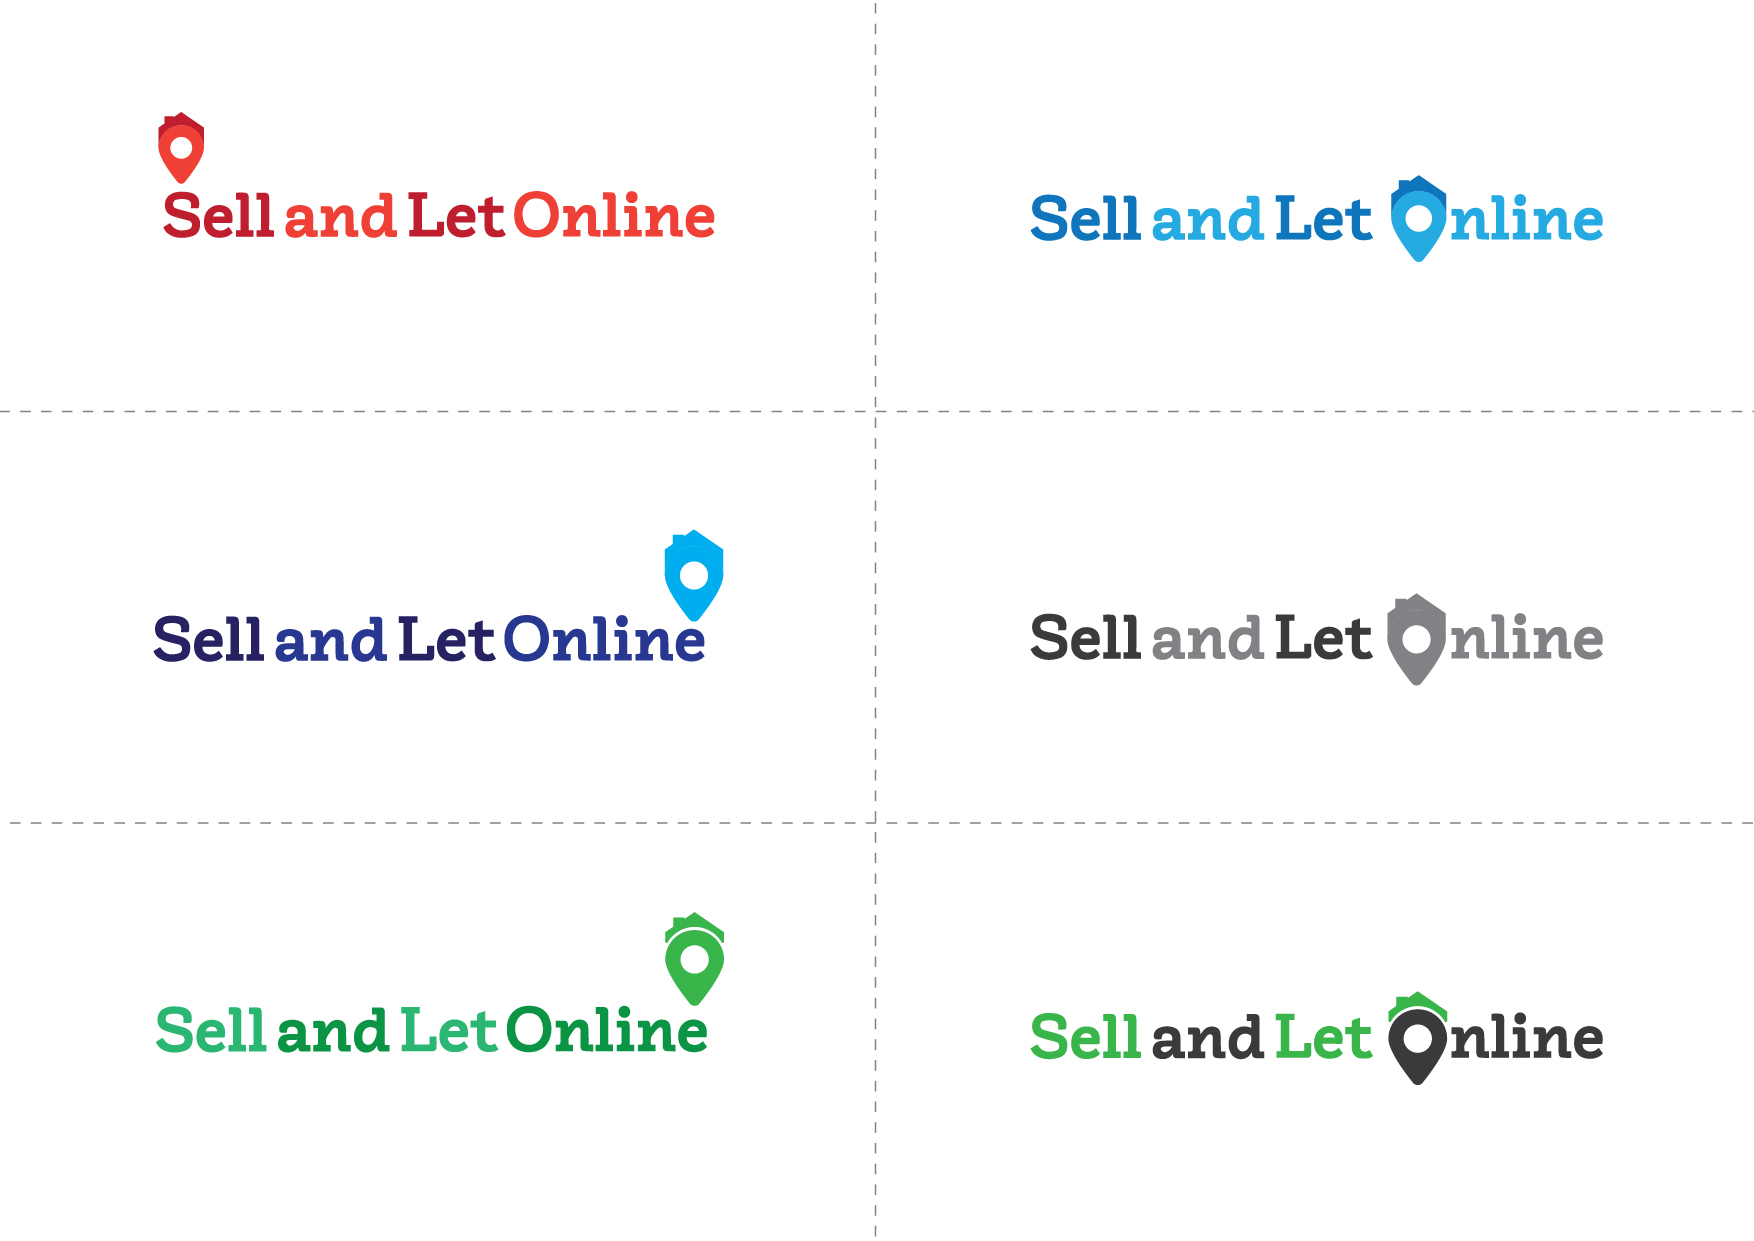 Sell and Let Online ideas